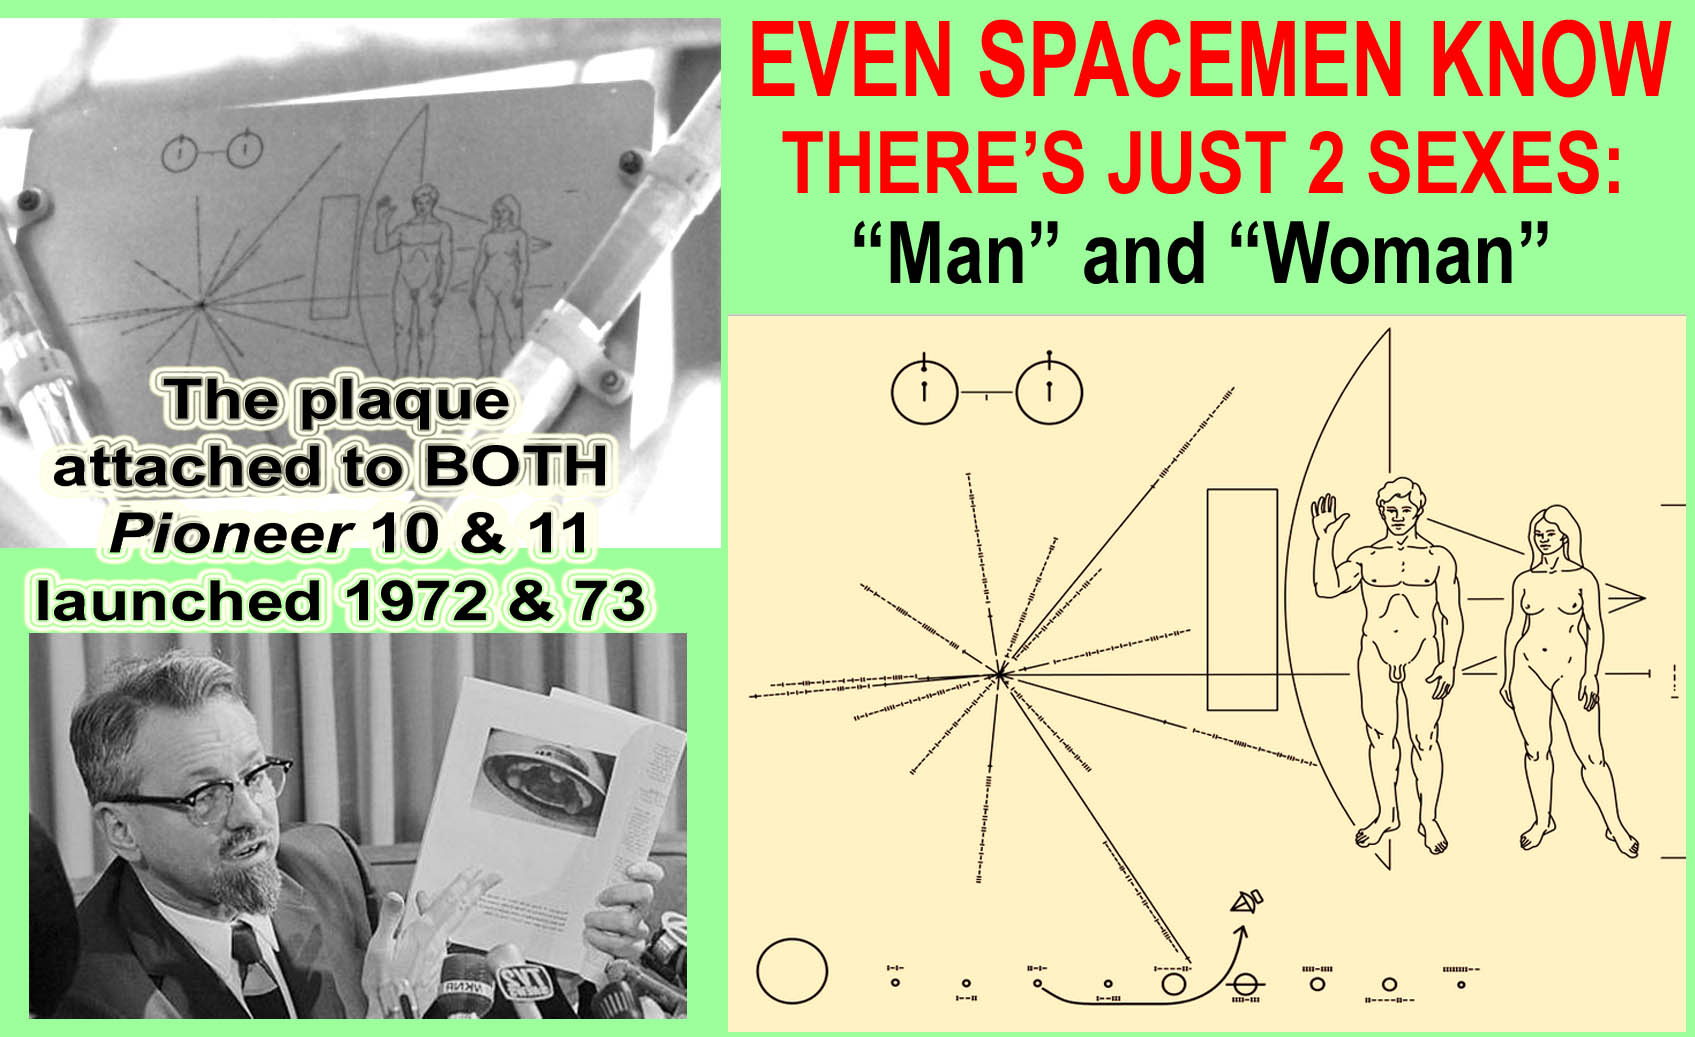 2 SEXES - MAN AND WOMAN - EVEN SPACEMEN KNOW THERES JUST 2 - JPEG.jpg